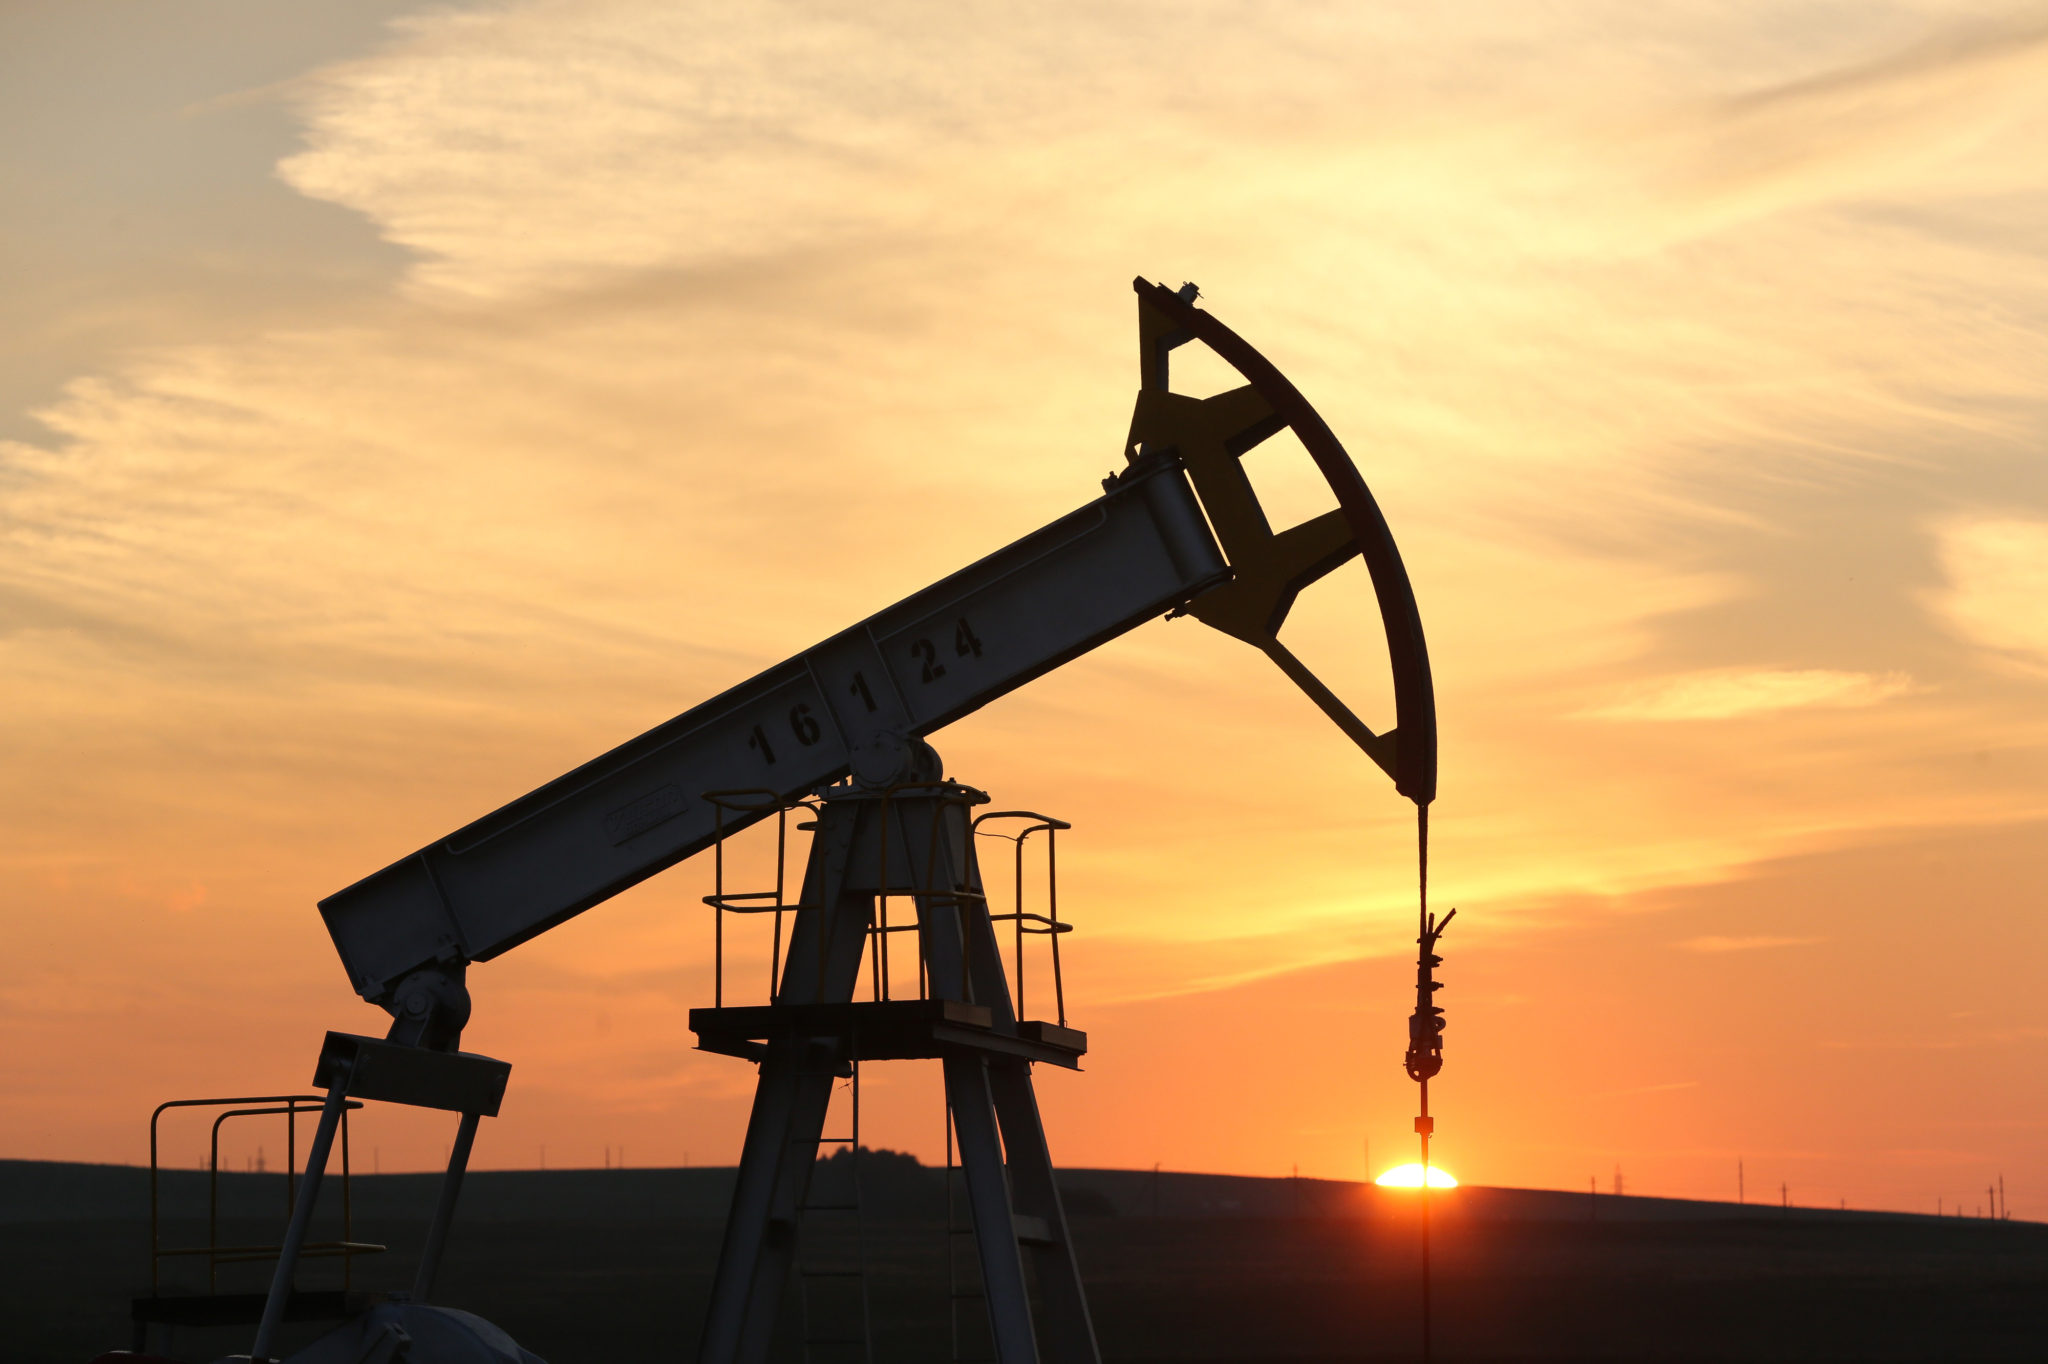 Russian Oil Drilling And Pumping | Econ Alerts